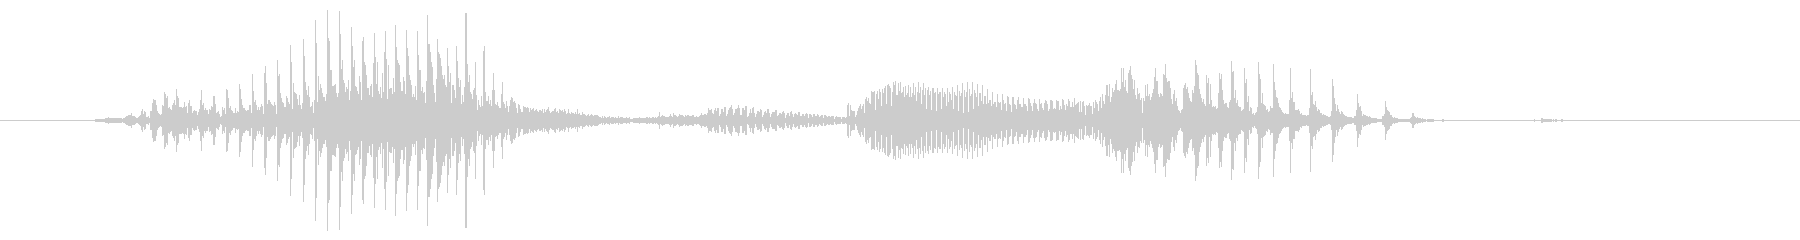 just do it's unreproduced waveform